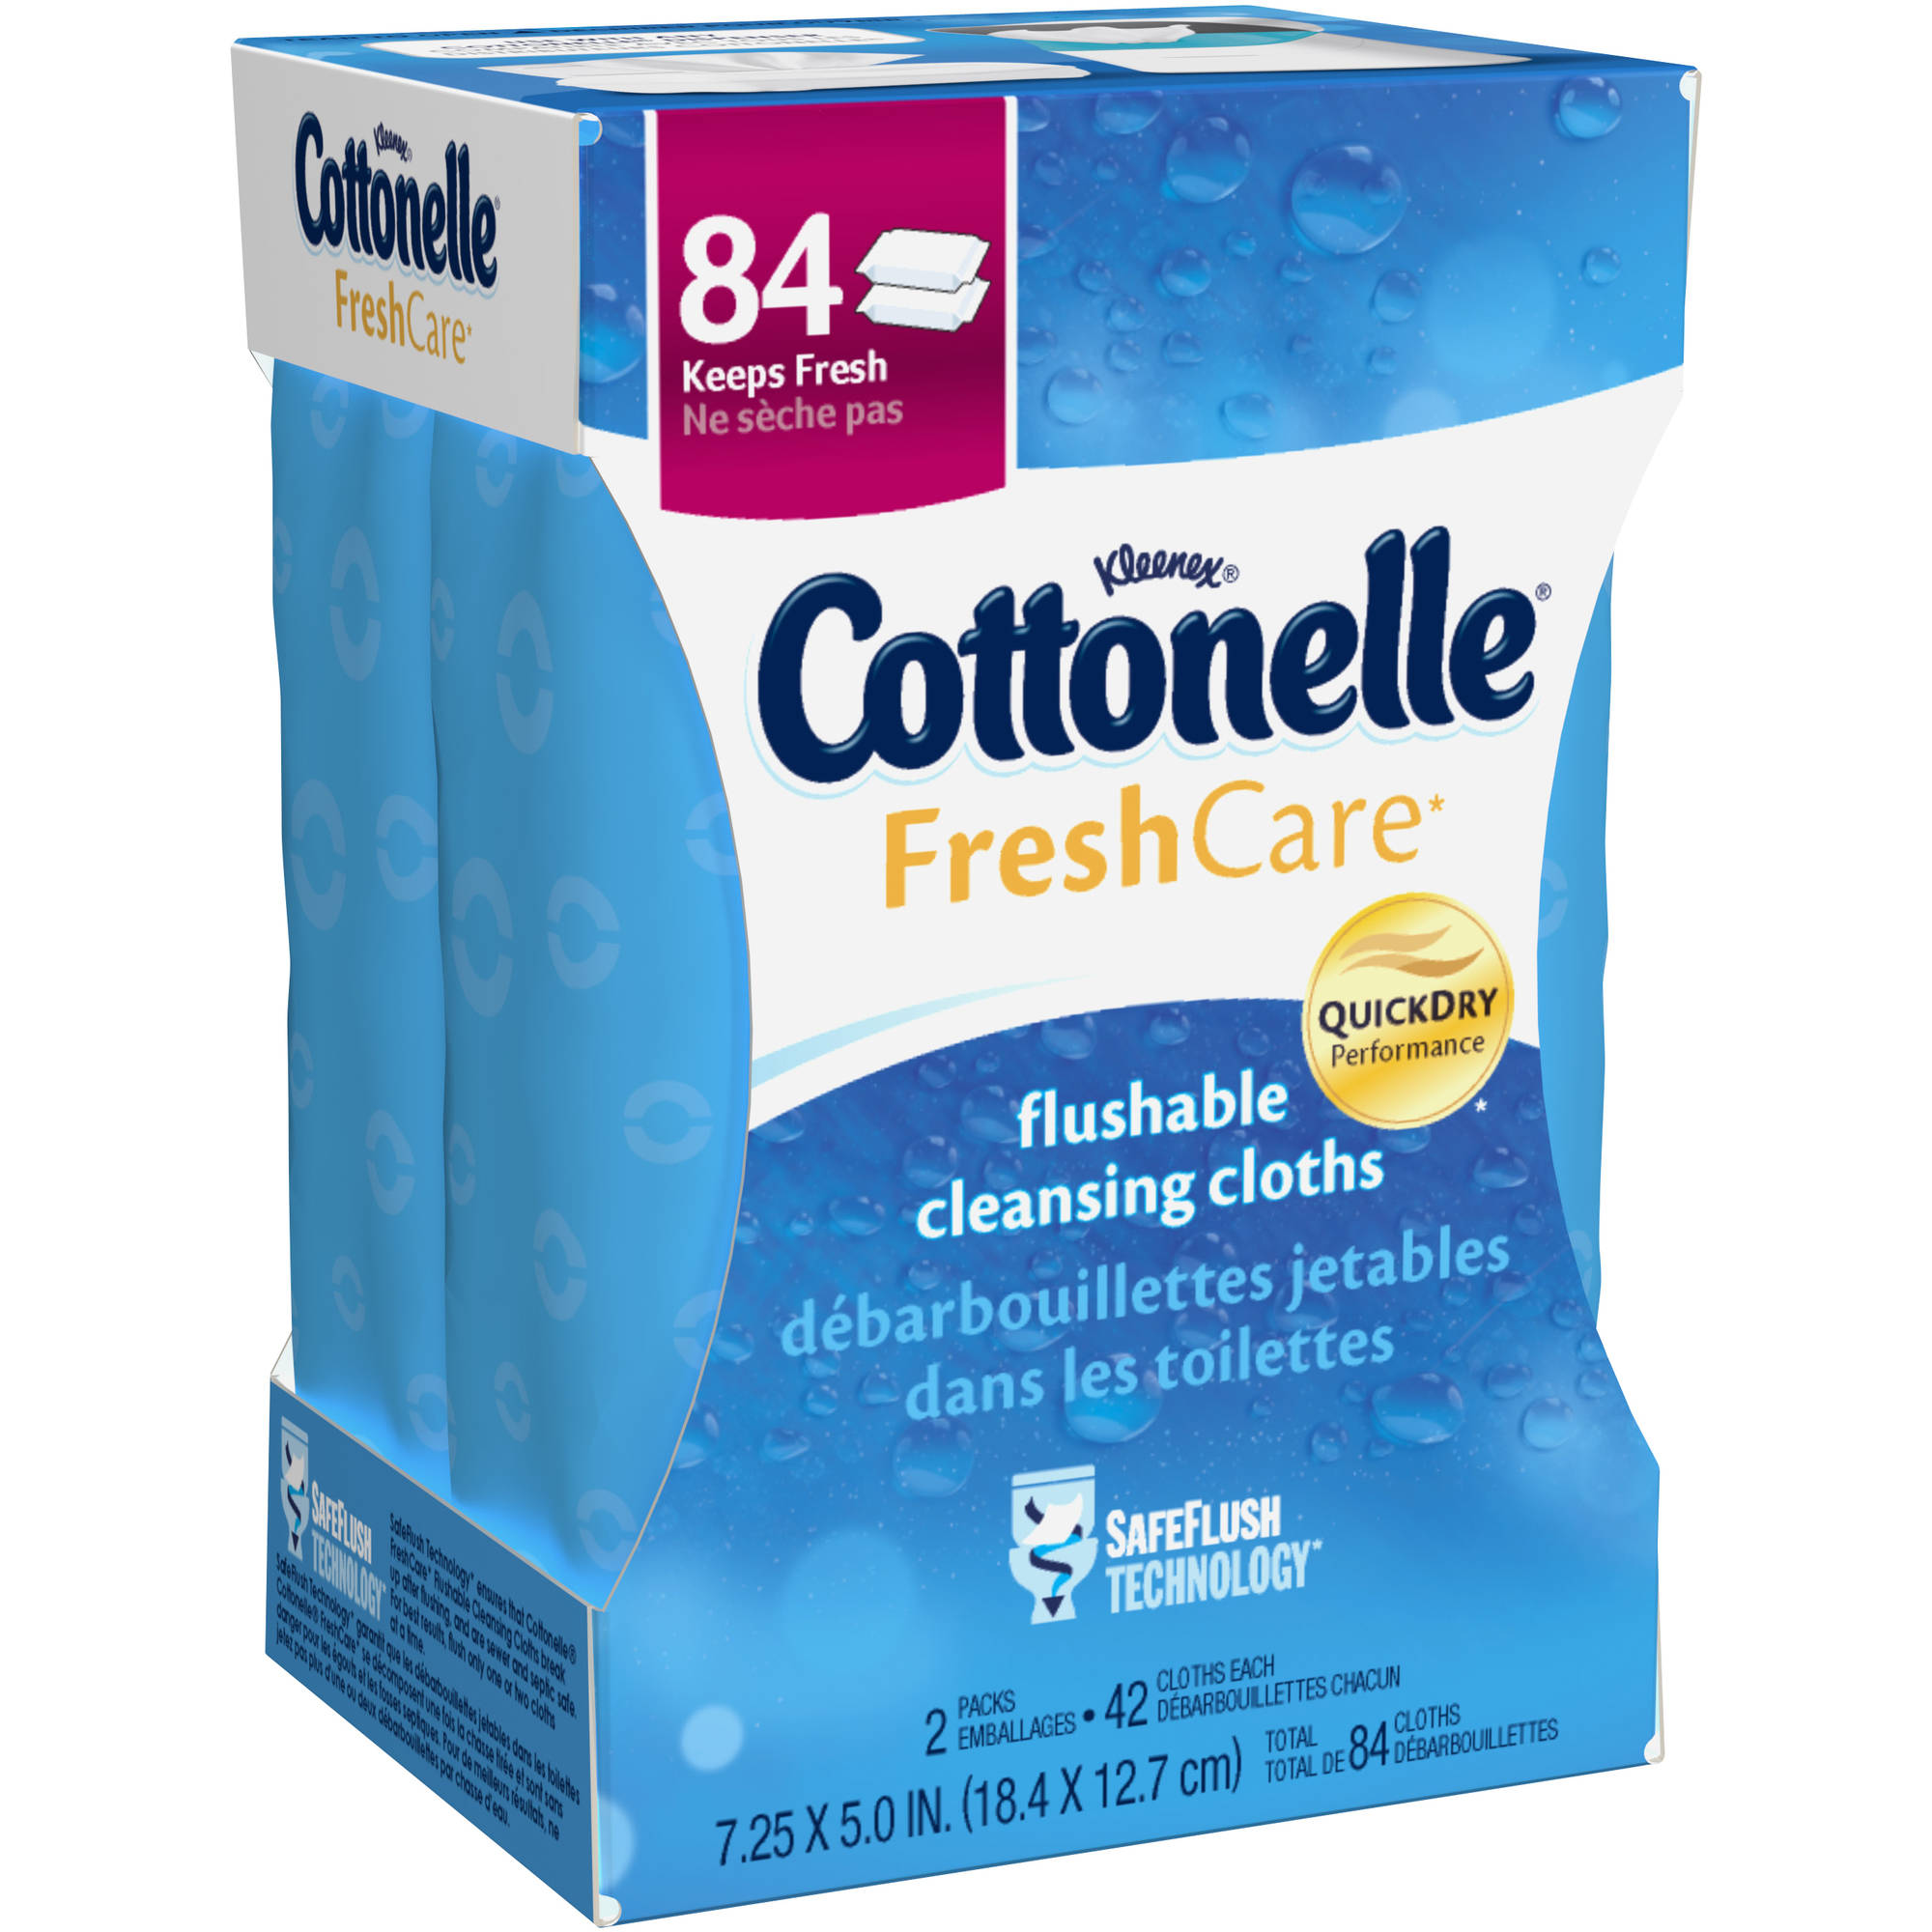 Cottonelle Fresh Care, Flushable Cleansing Cloths Refills, 84 Sheets (Pack of 2)